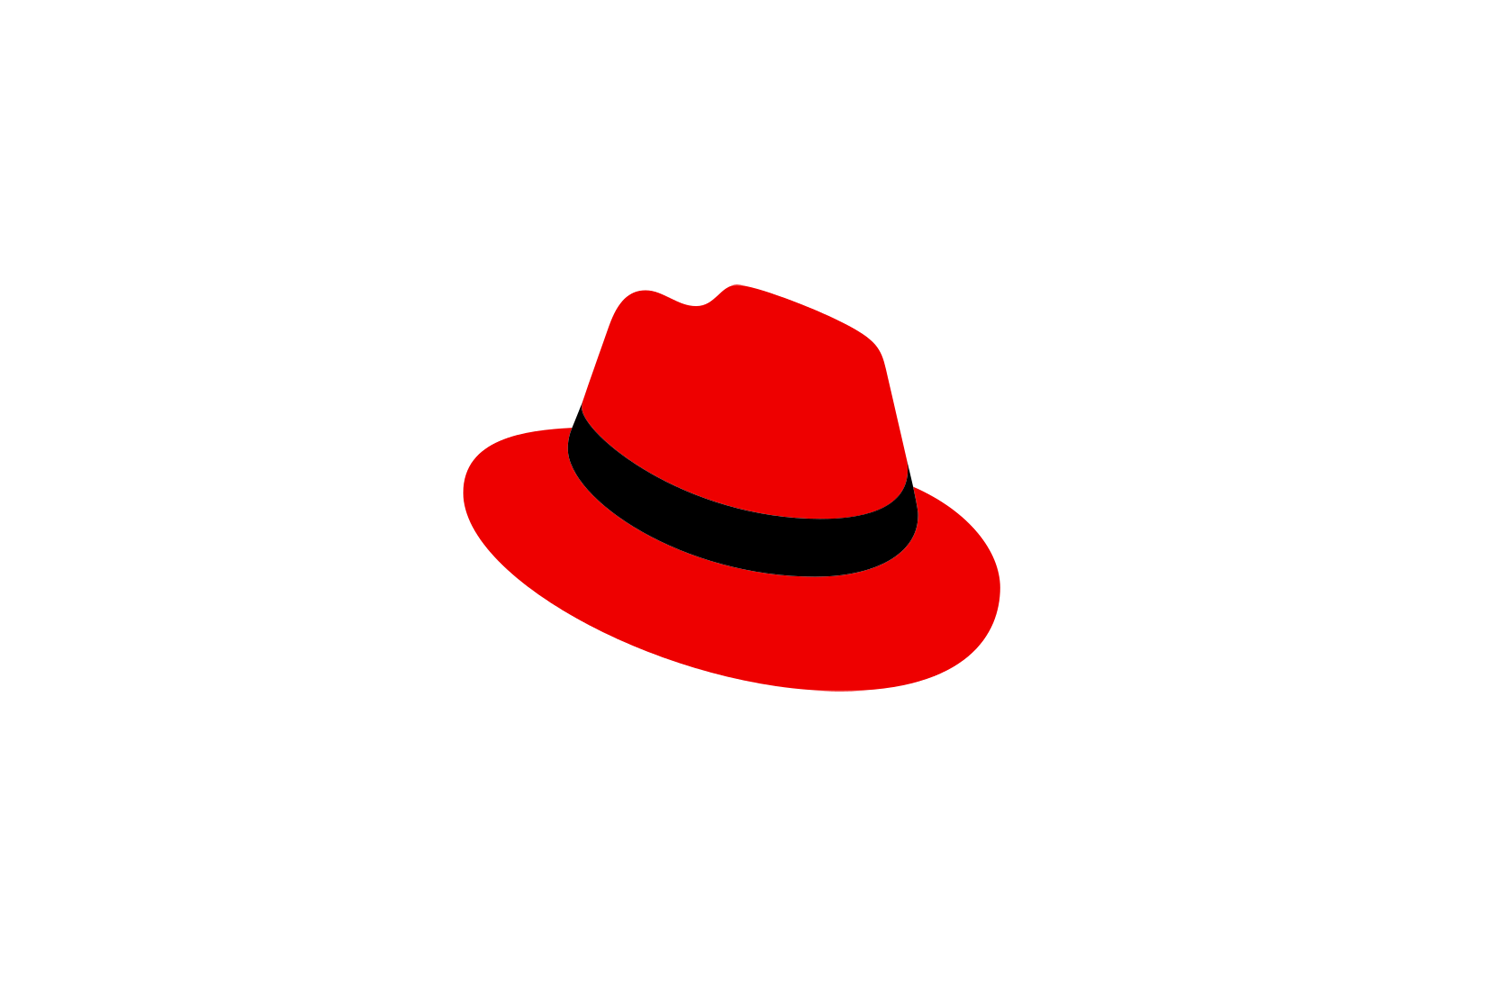 Red Hat logo.